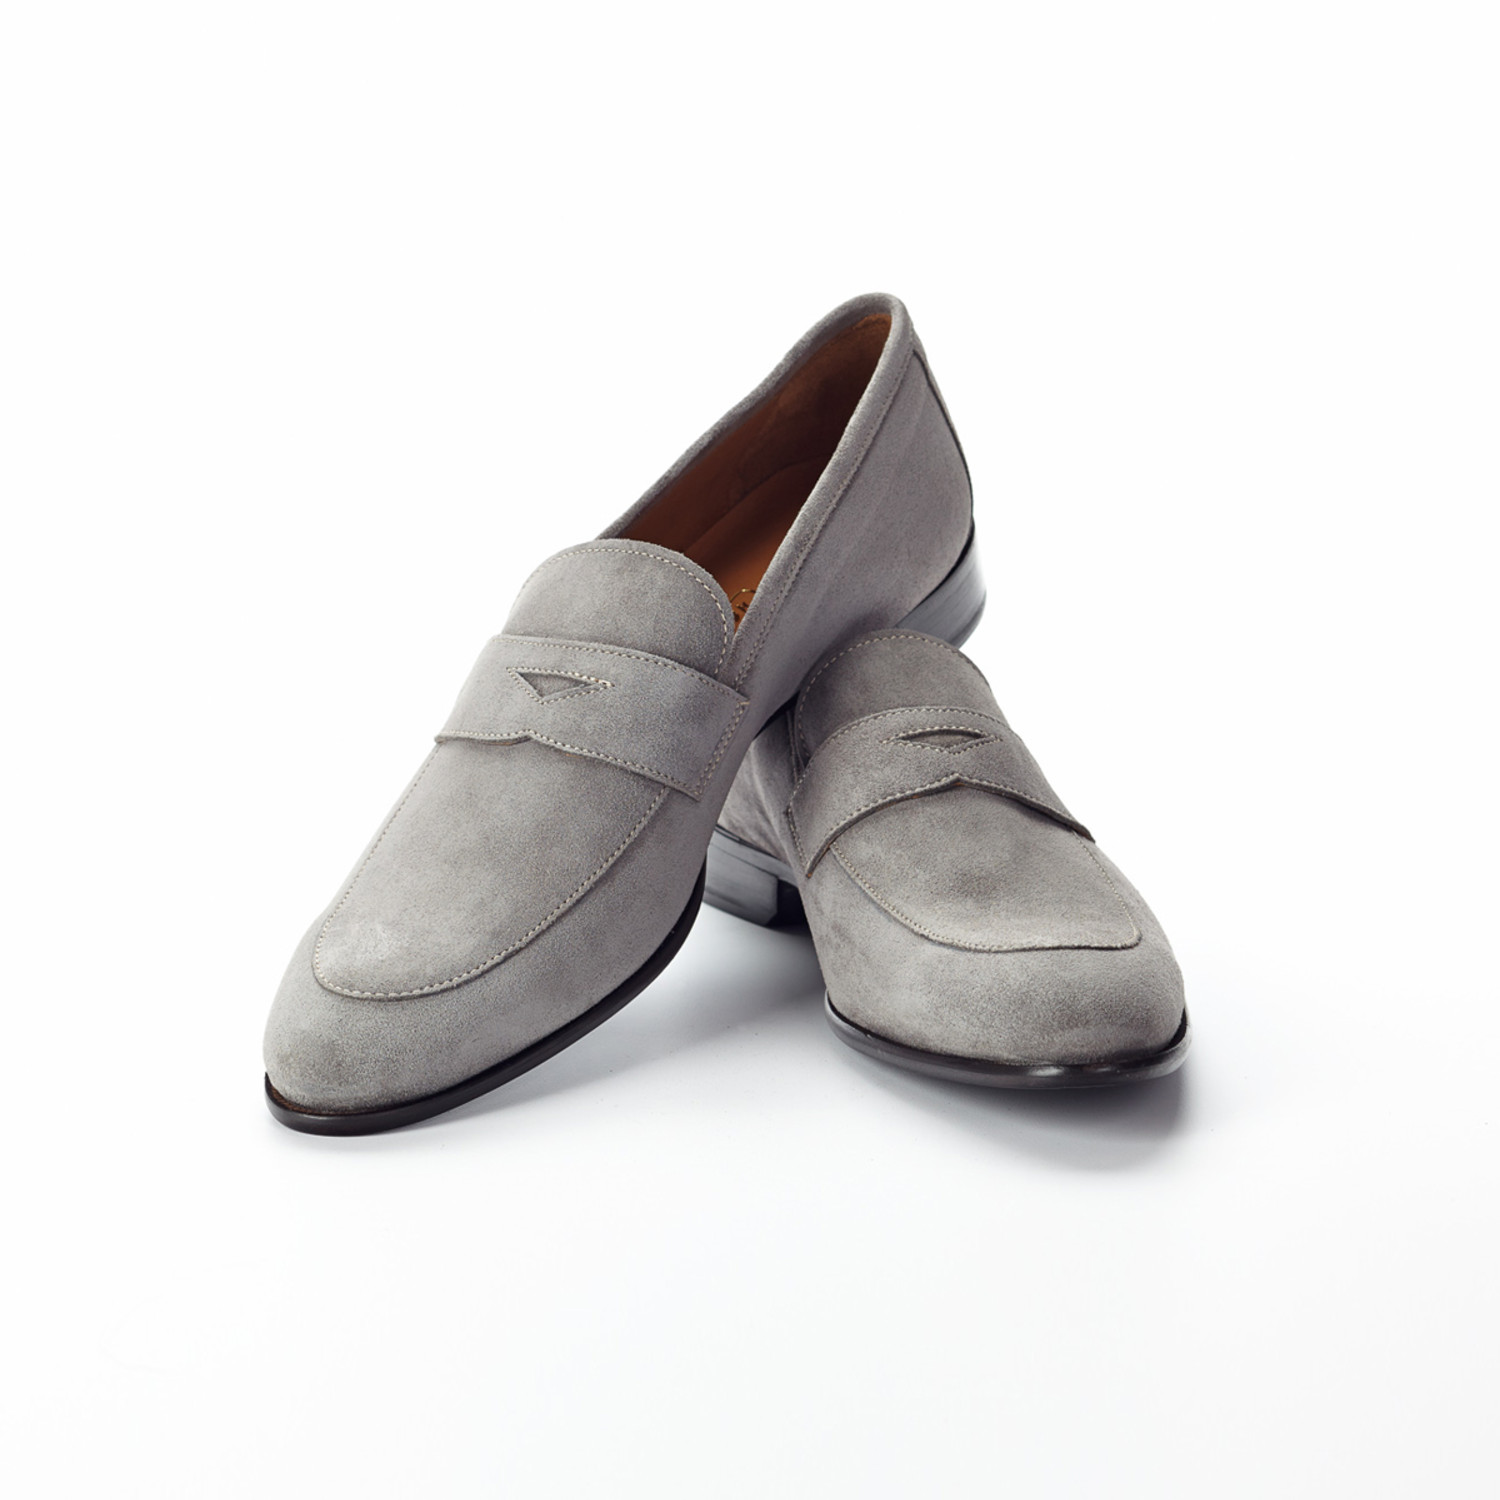 200b3fa745c Paul Evans    The Stewart Loafer    Grey Suede (US  8.5) - Paul ...